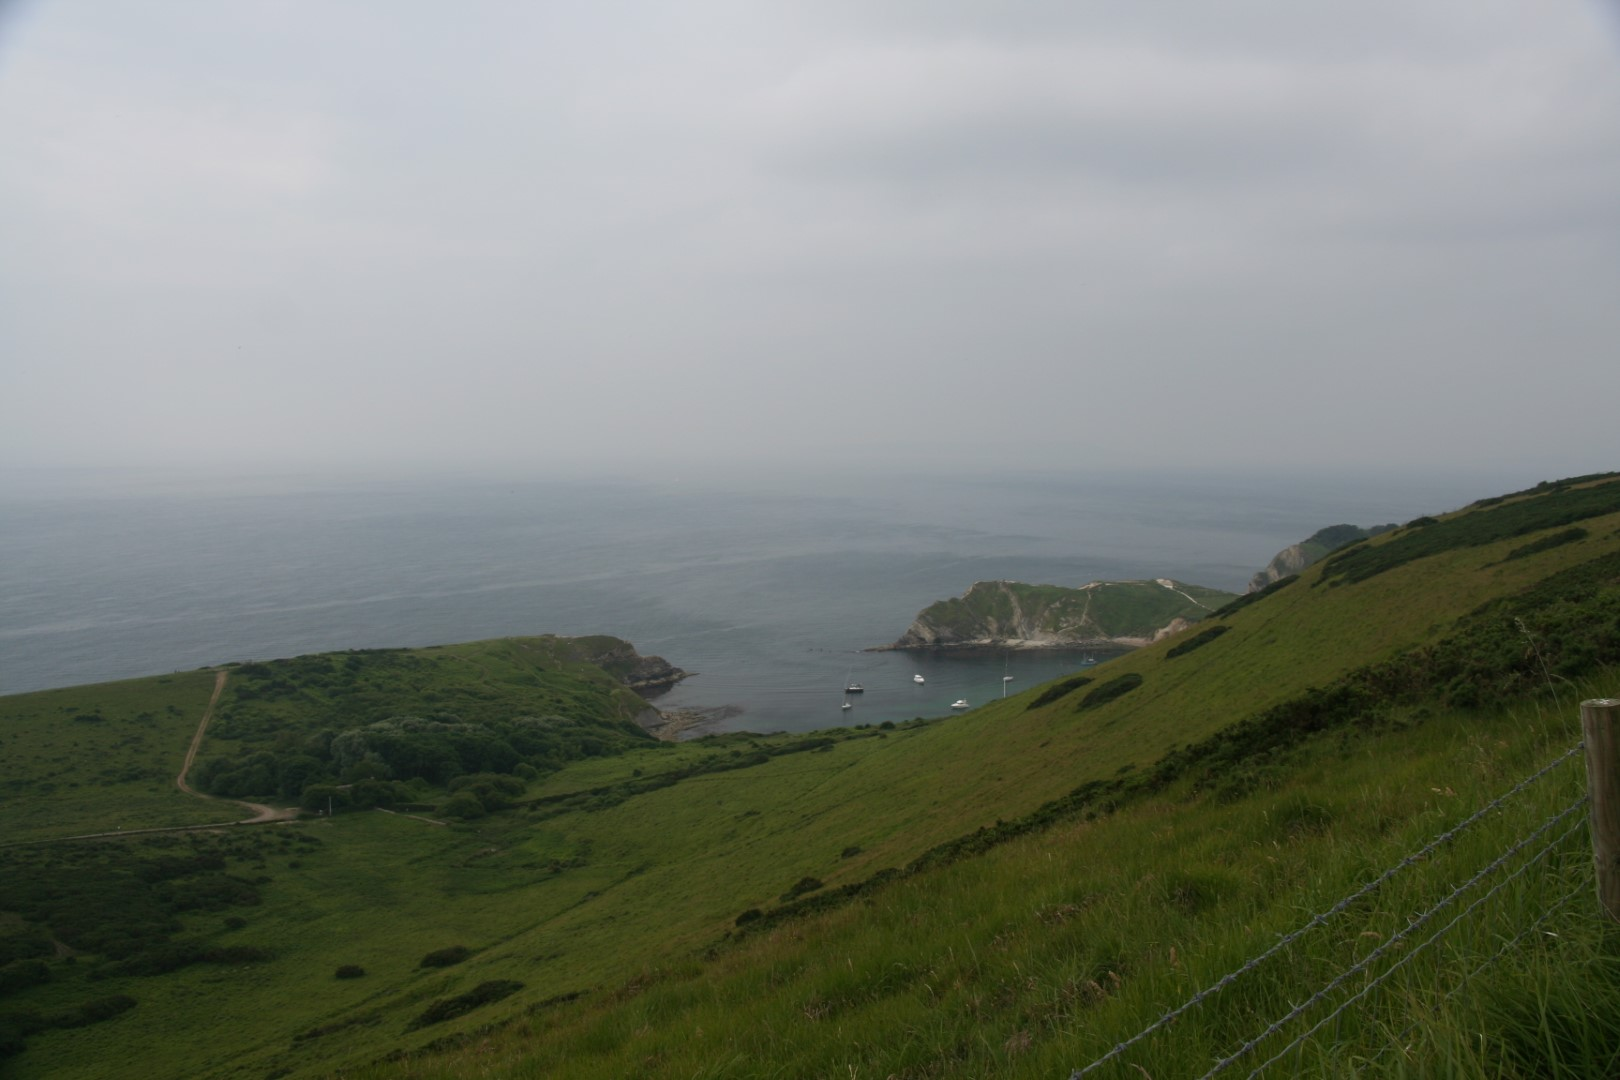 Lulworth Cove from a different angle.